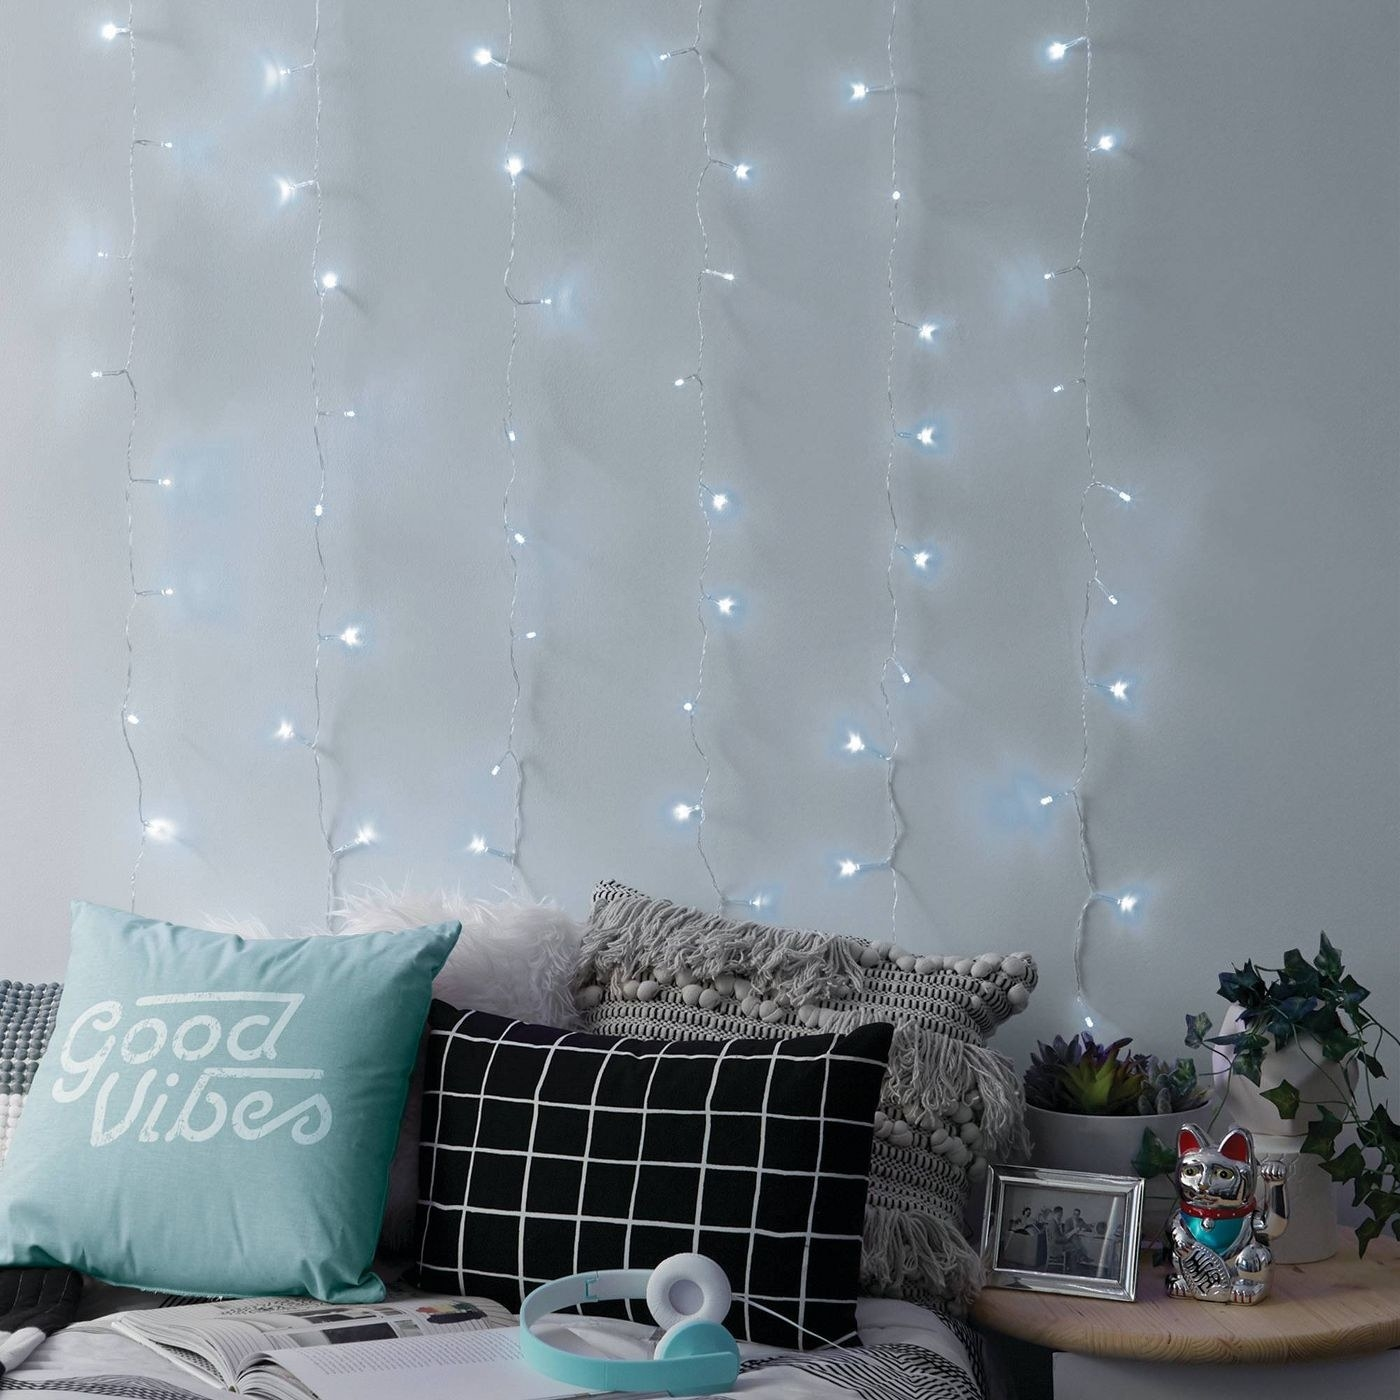 Cool white/blue lights in gray and blue bedroom